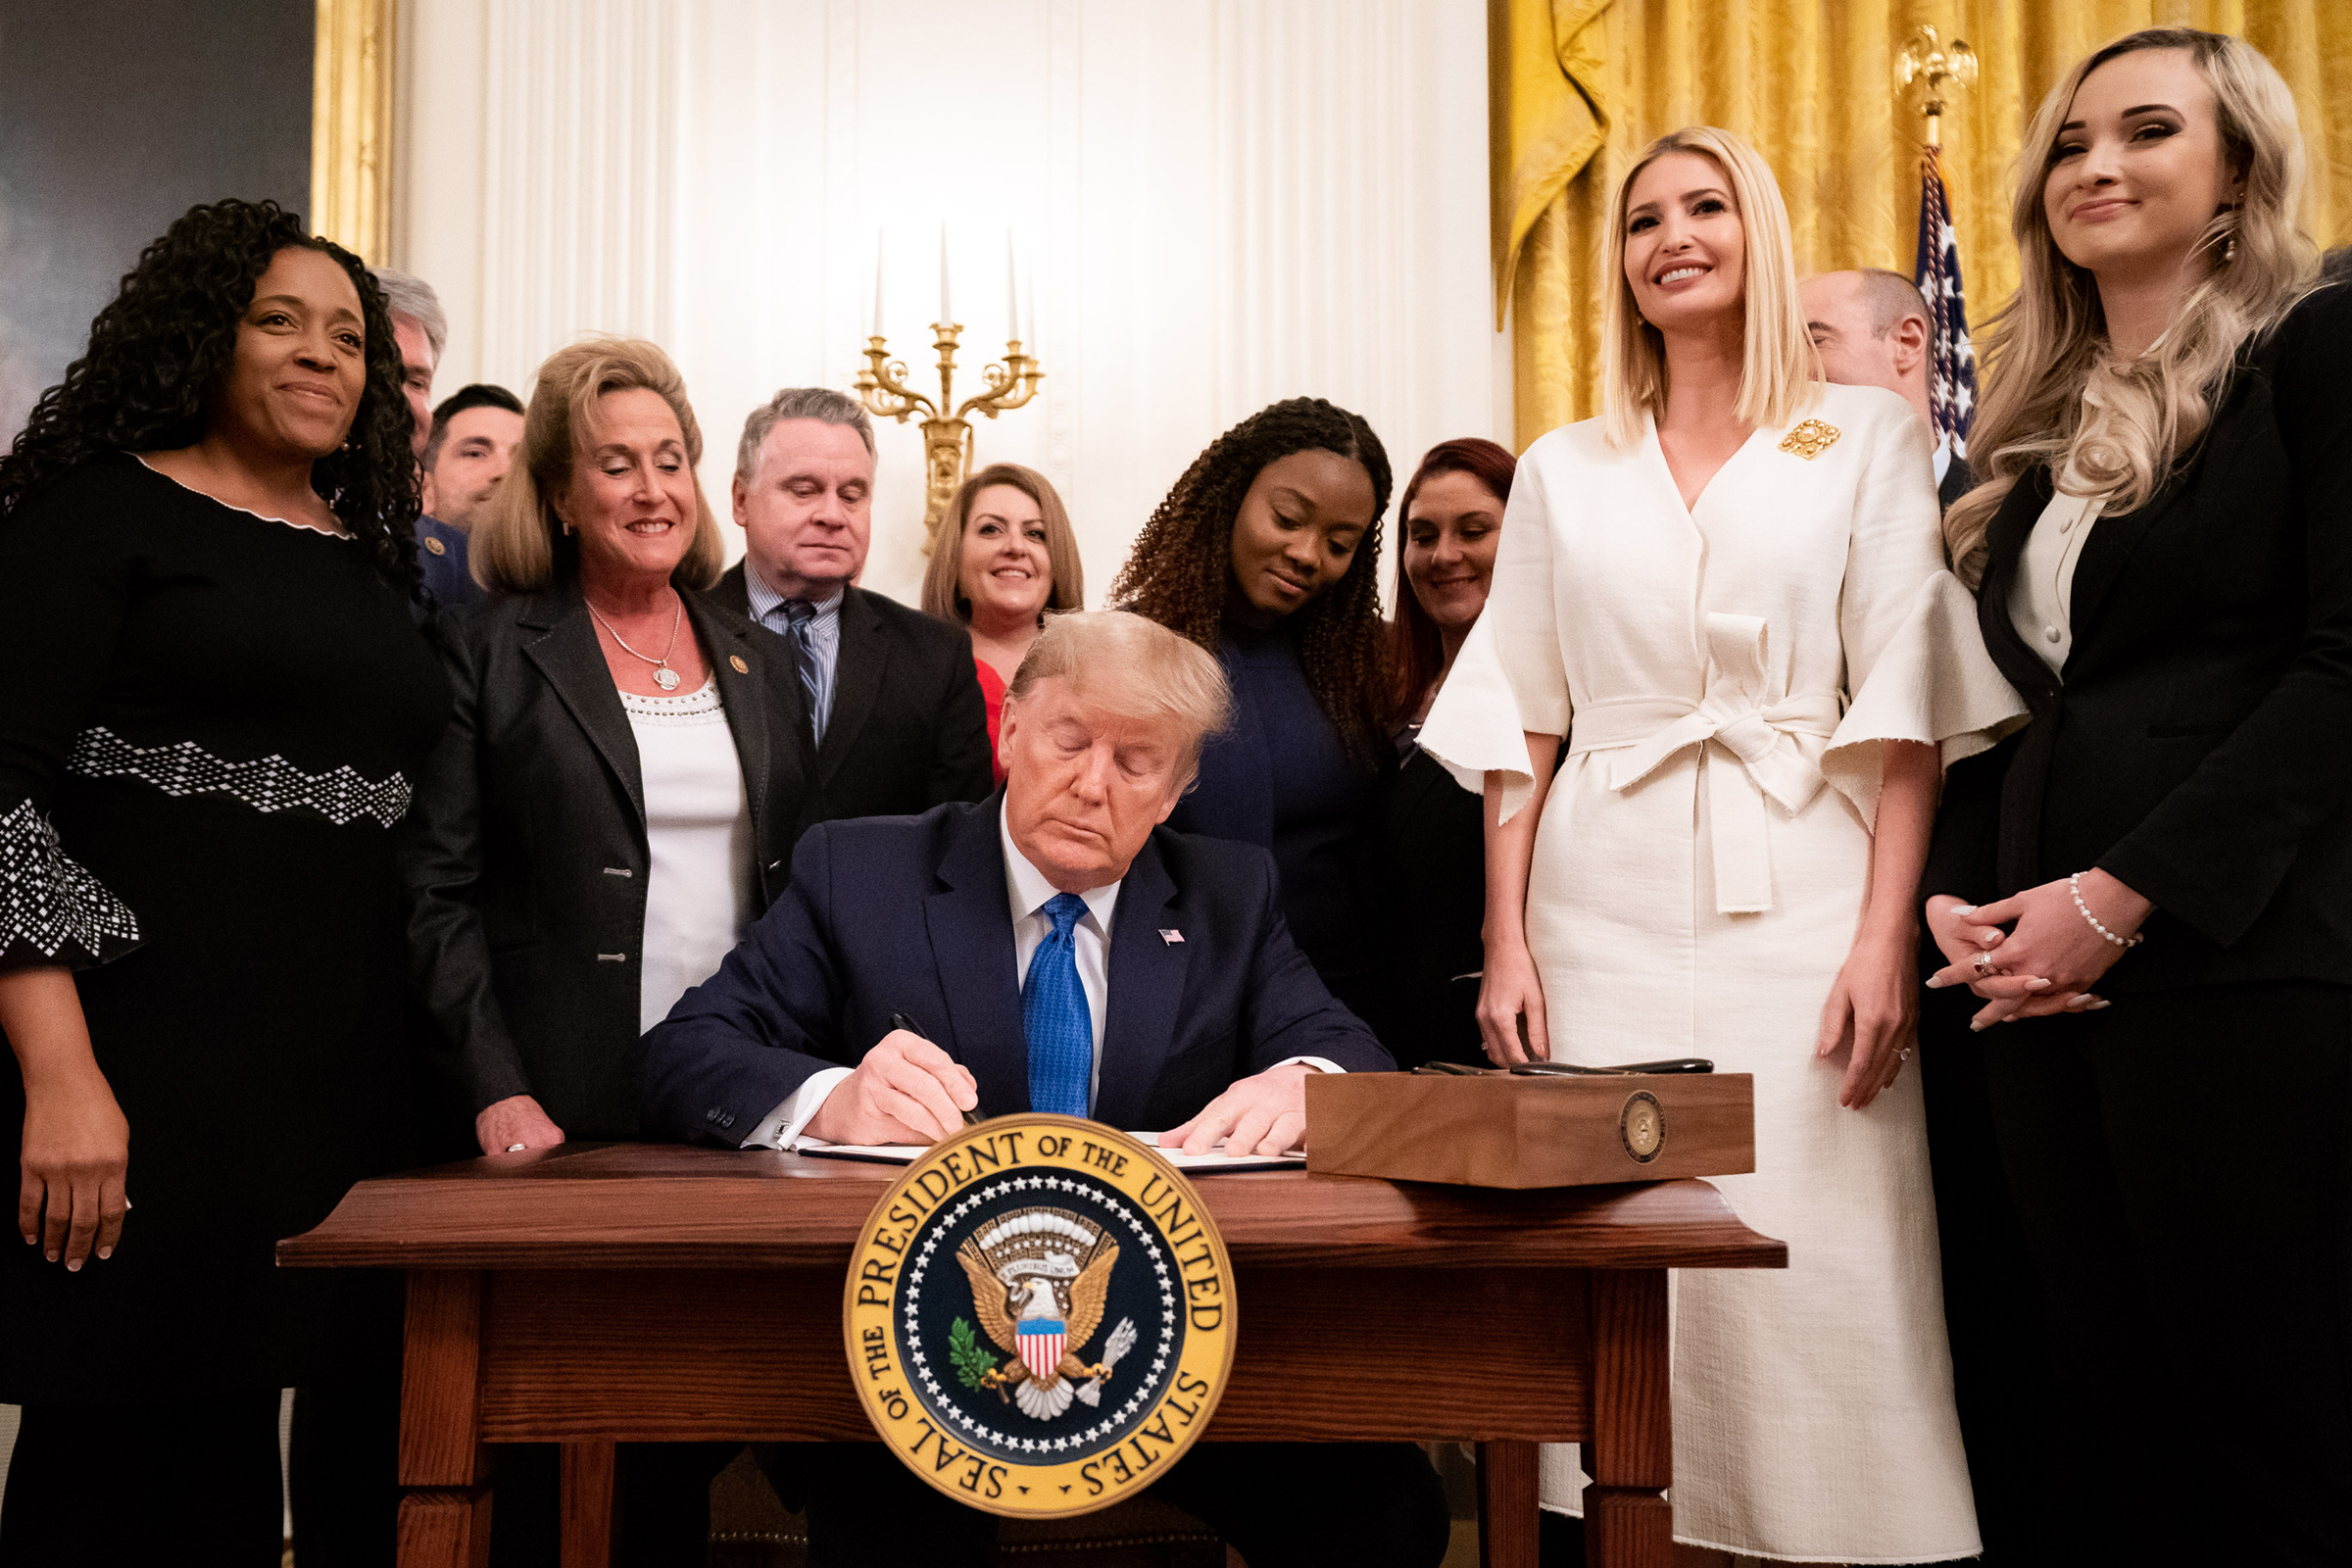 President Donald J. Trump signs an Executive Order for Combating Human Trafficking and Online Child Exploitation in the United States, at the White House Summit on Human Trafficking on Jan. 31, 2020.